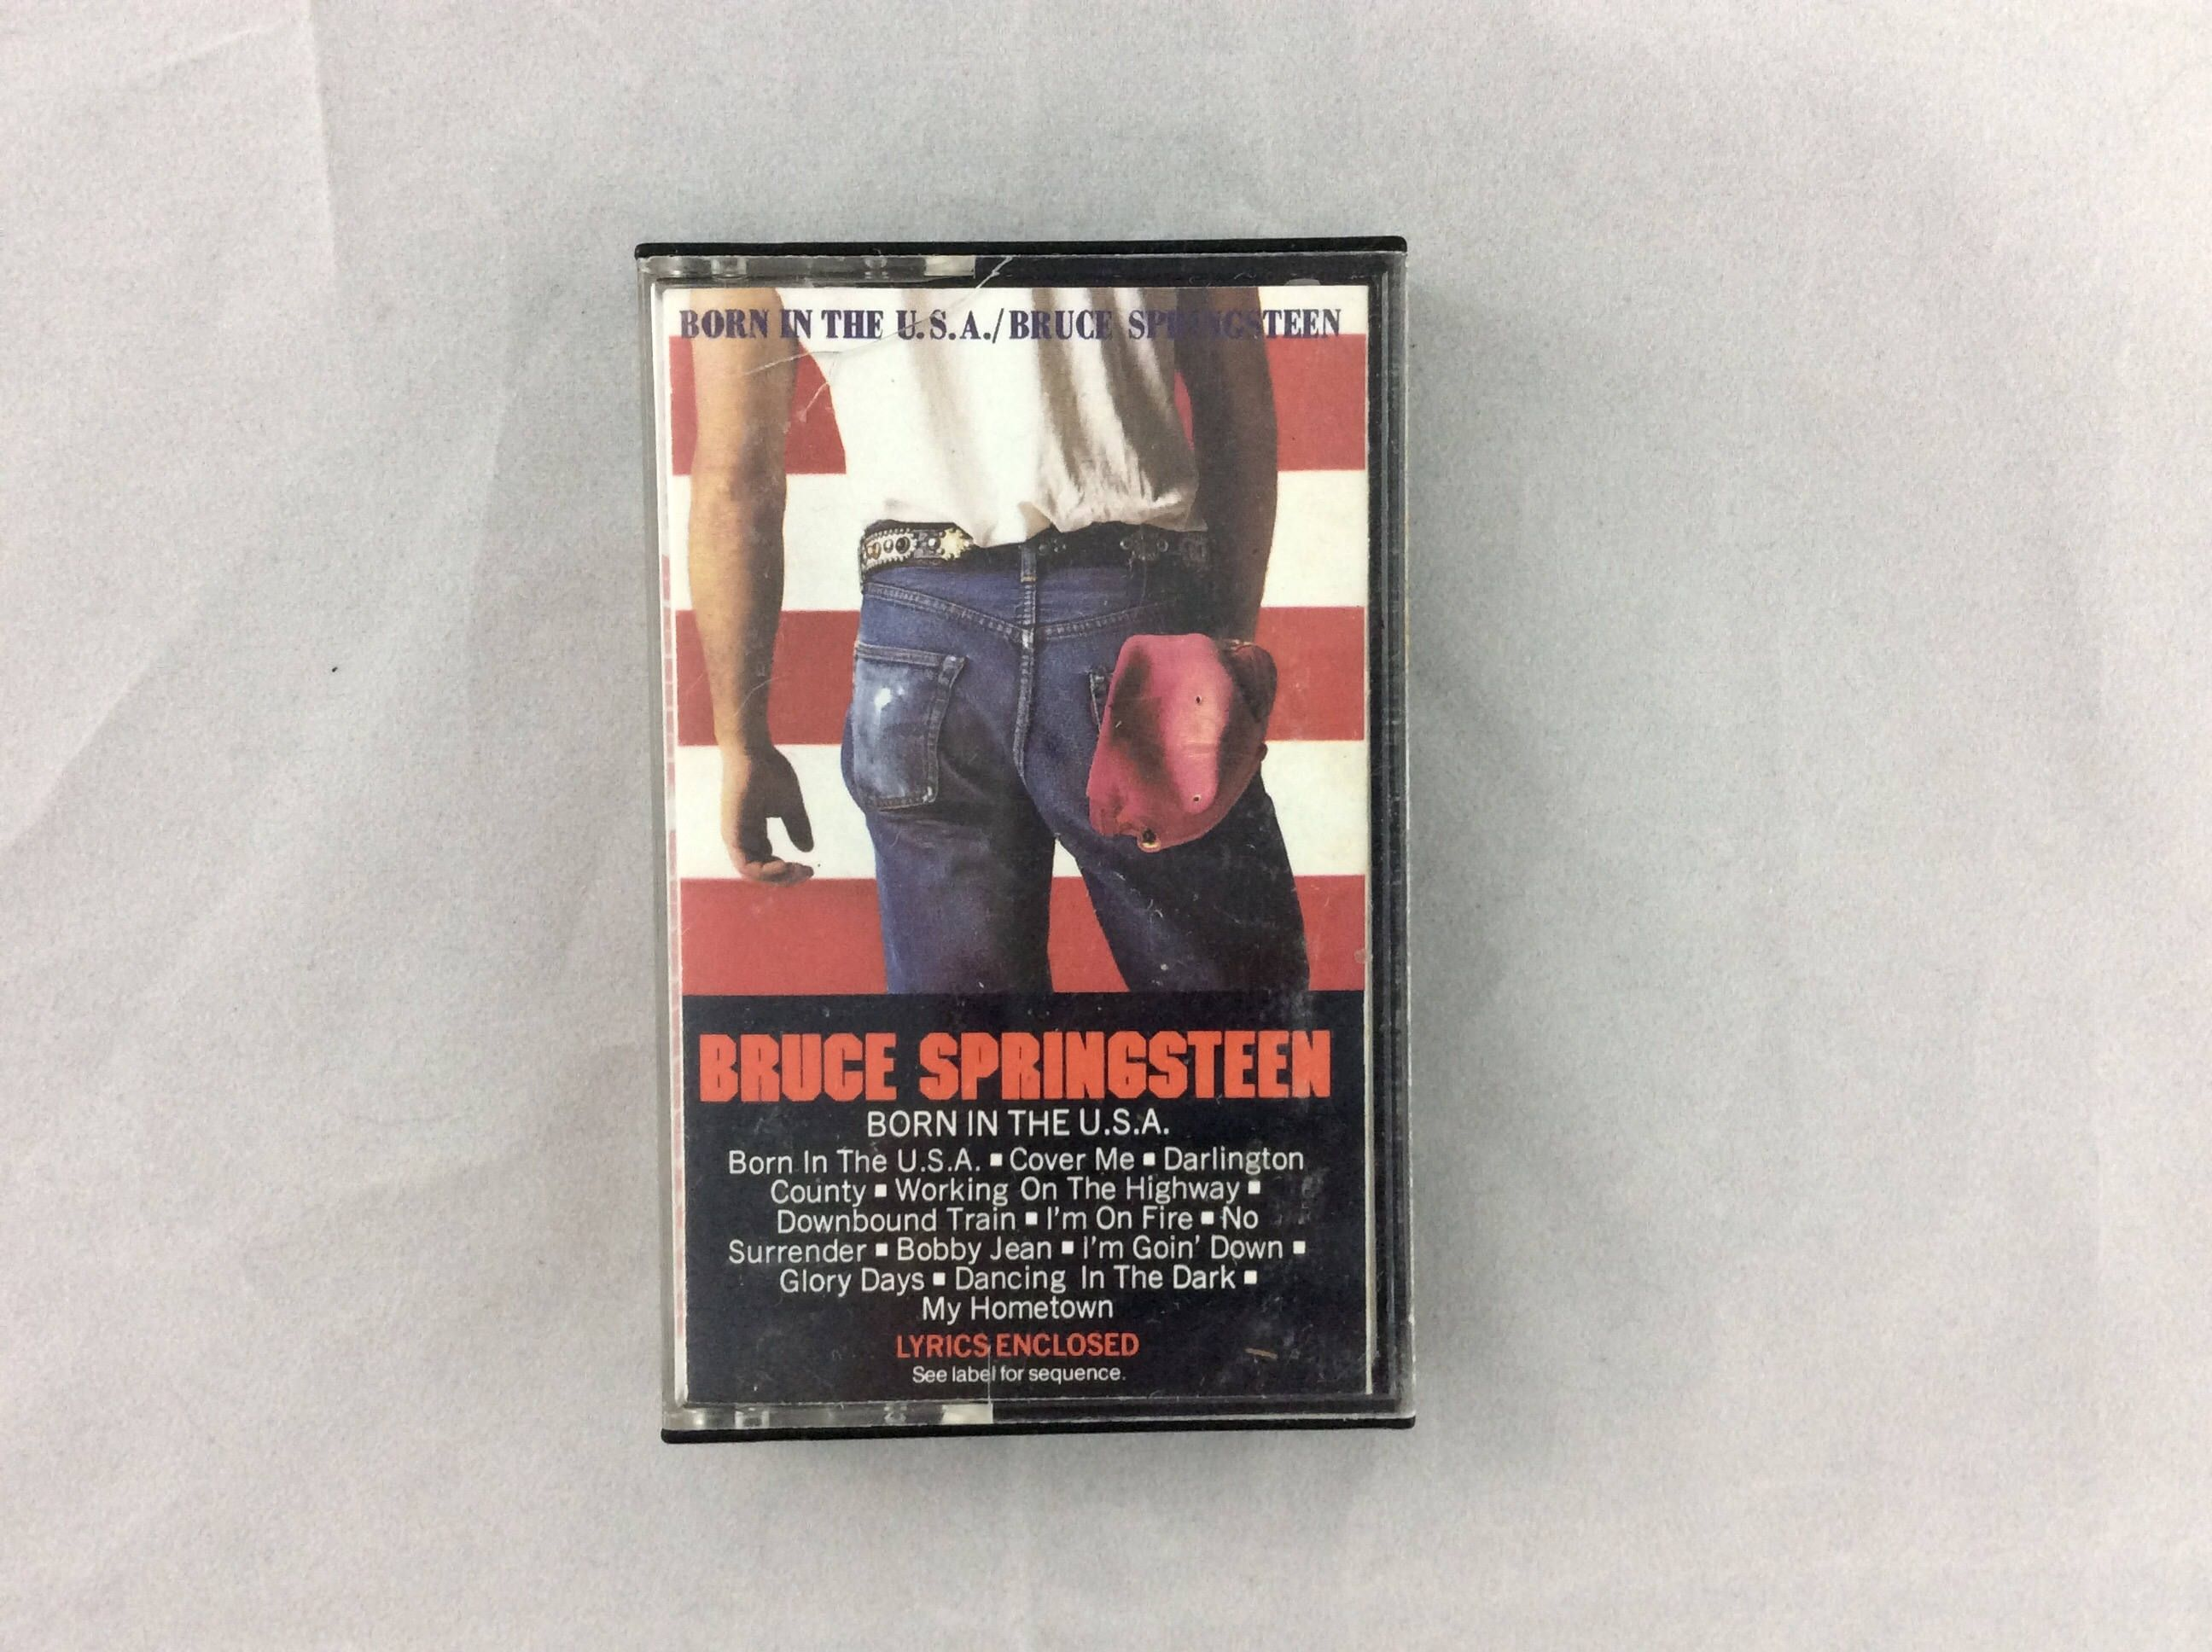 Cassette Tape Bruce Springsteen Born In The U.S.A. by